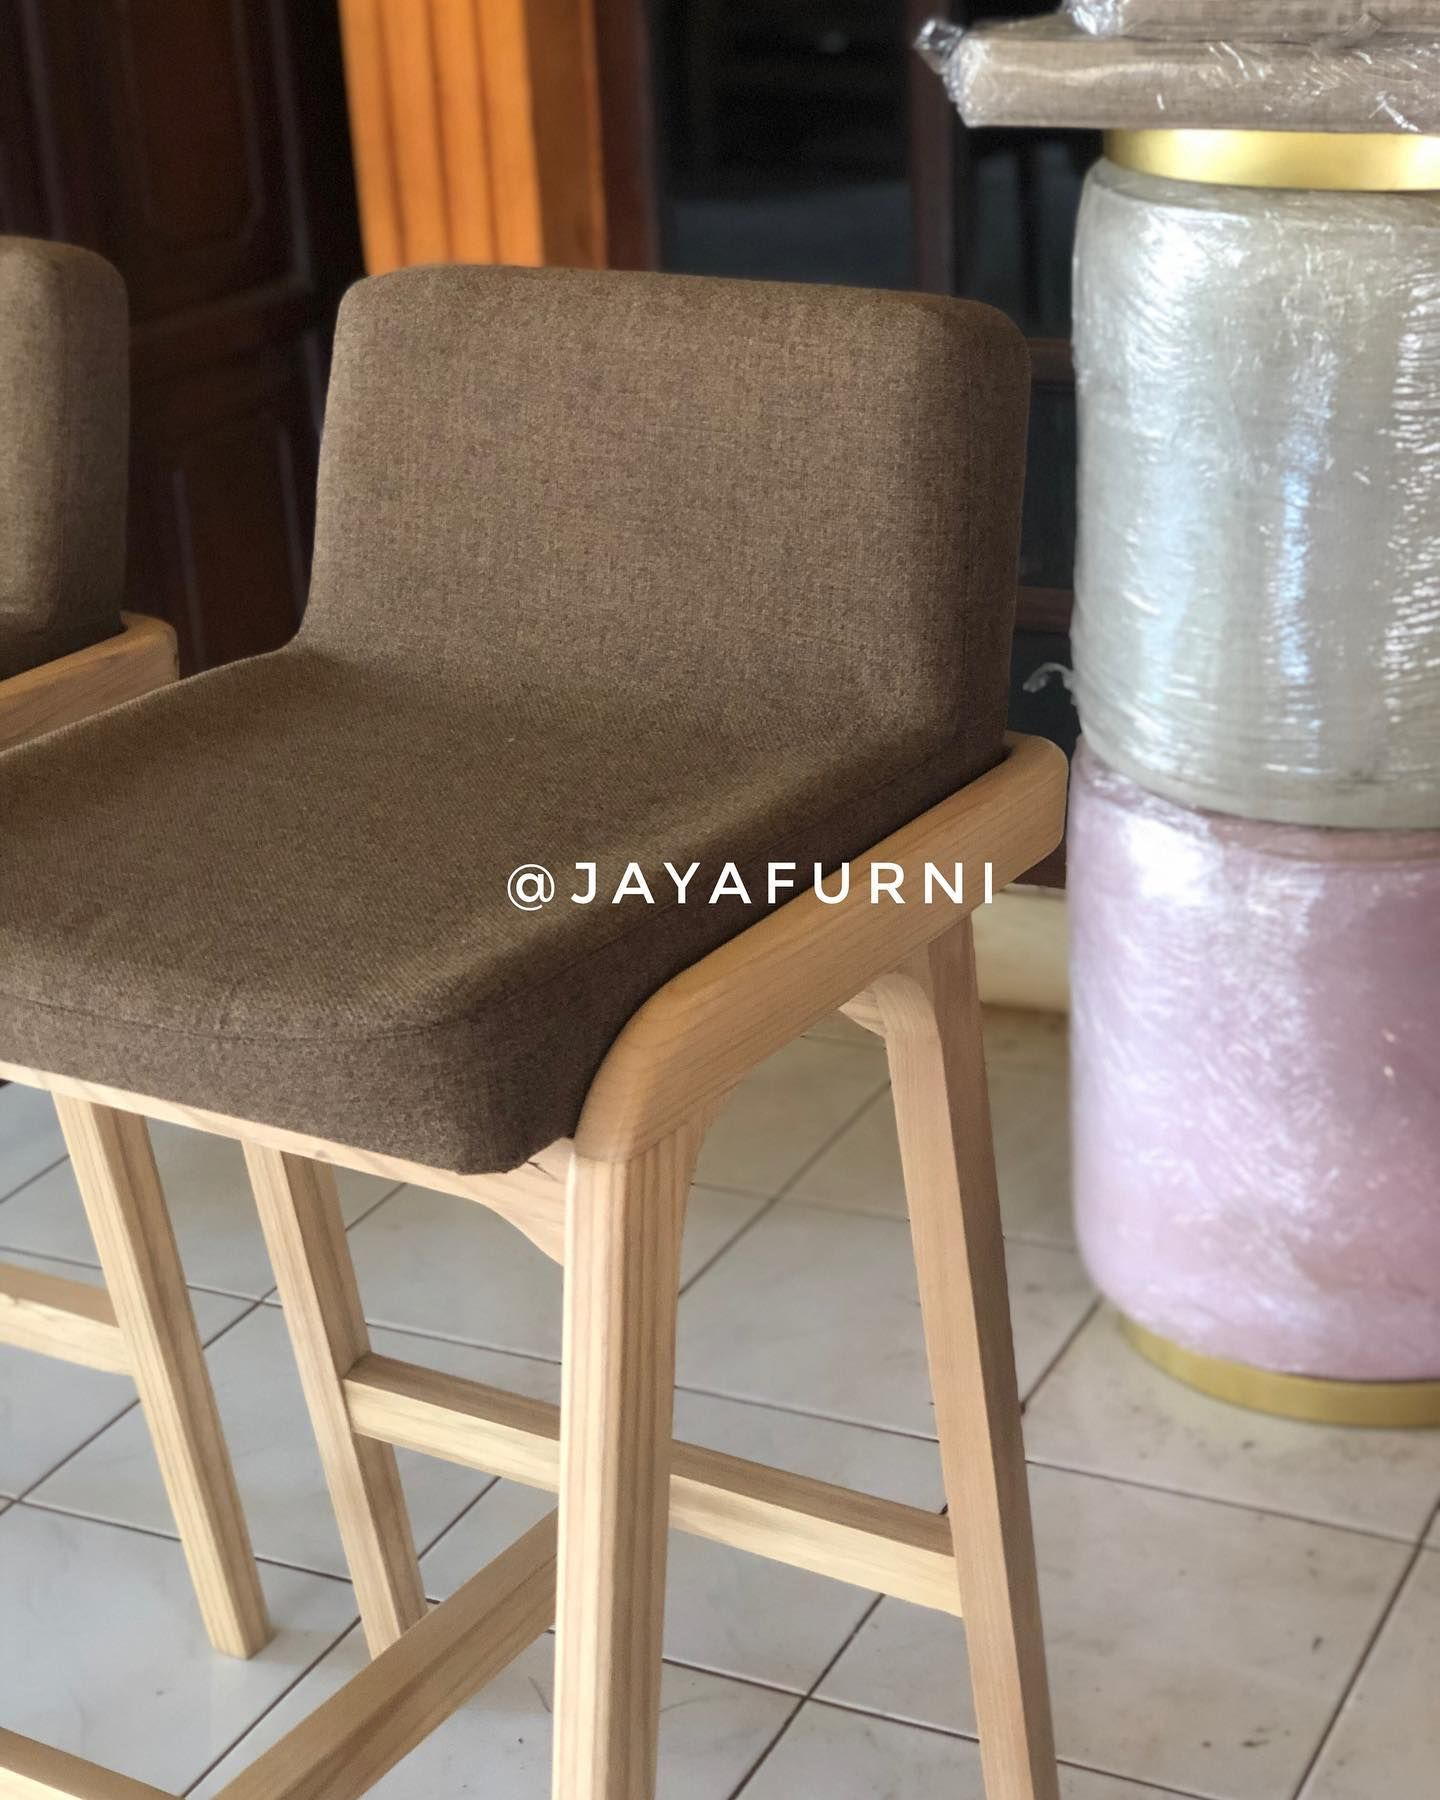 MODERN BAR CHAIR ( Sungkai )  dimensi 42 x 42 x  75 )cm) Material kayu mahoni/kayu jati/kayu sungkai  Free custom Colour  ORDER WA : 08563099283  #furnituresale #furniturecafe #marketing #meubelminimalist #furniturebali #scandinavianhome #bangkukayu #teakwood #meubelmurah #furniturebandung #furniturejakarta #furniturevintage #kursirotan #furniture #livingroom #jakartafurniture #homeliving #furnituremurah #kursicafe #furnituredesign #diningchair #homeinterior #interior #cafechair #kursibar